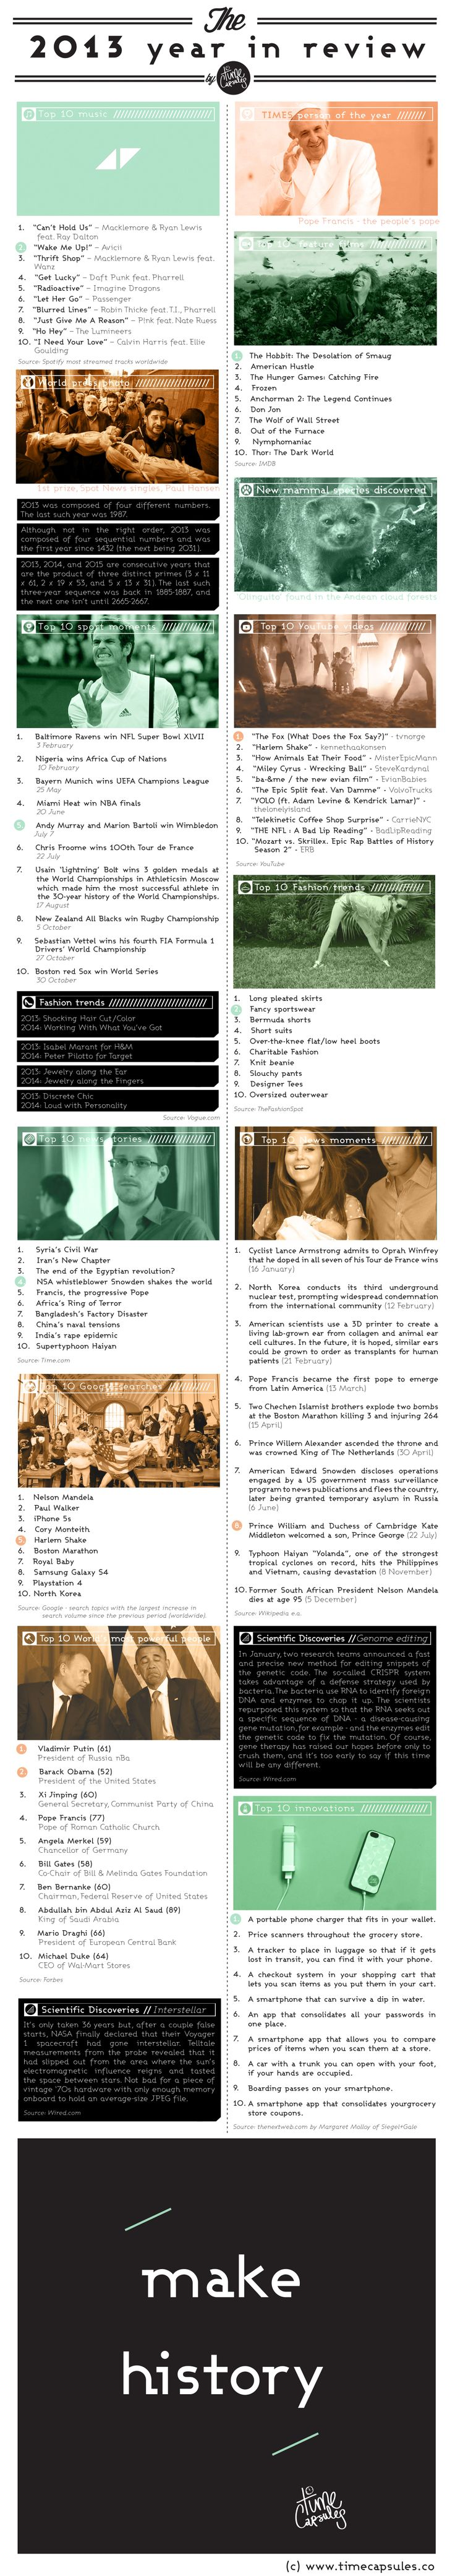 2013 year in review by TimeCapsules. Click to download printable. Save in your TimeCapsule so it will contain the most remarkable things that happened in the world in 2013. Our treat!